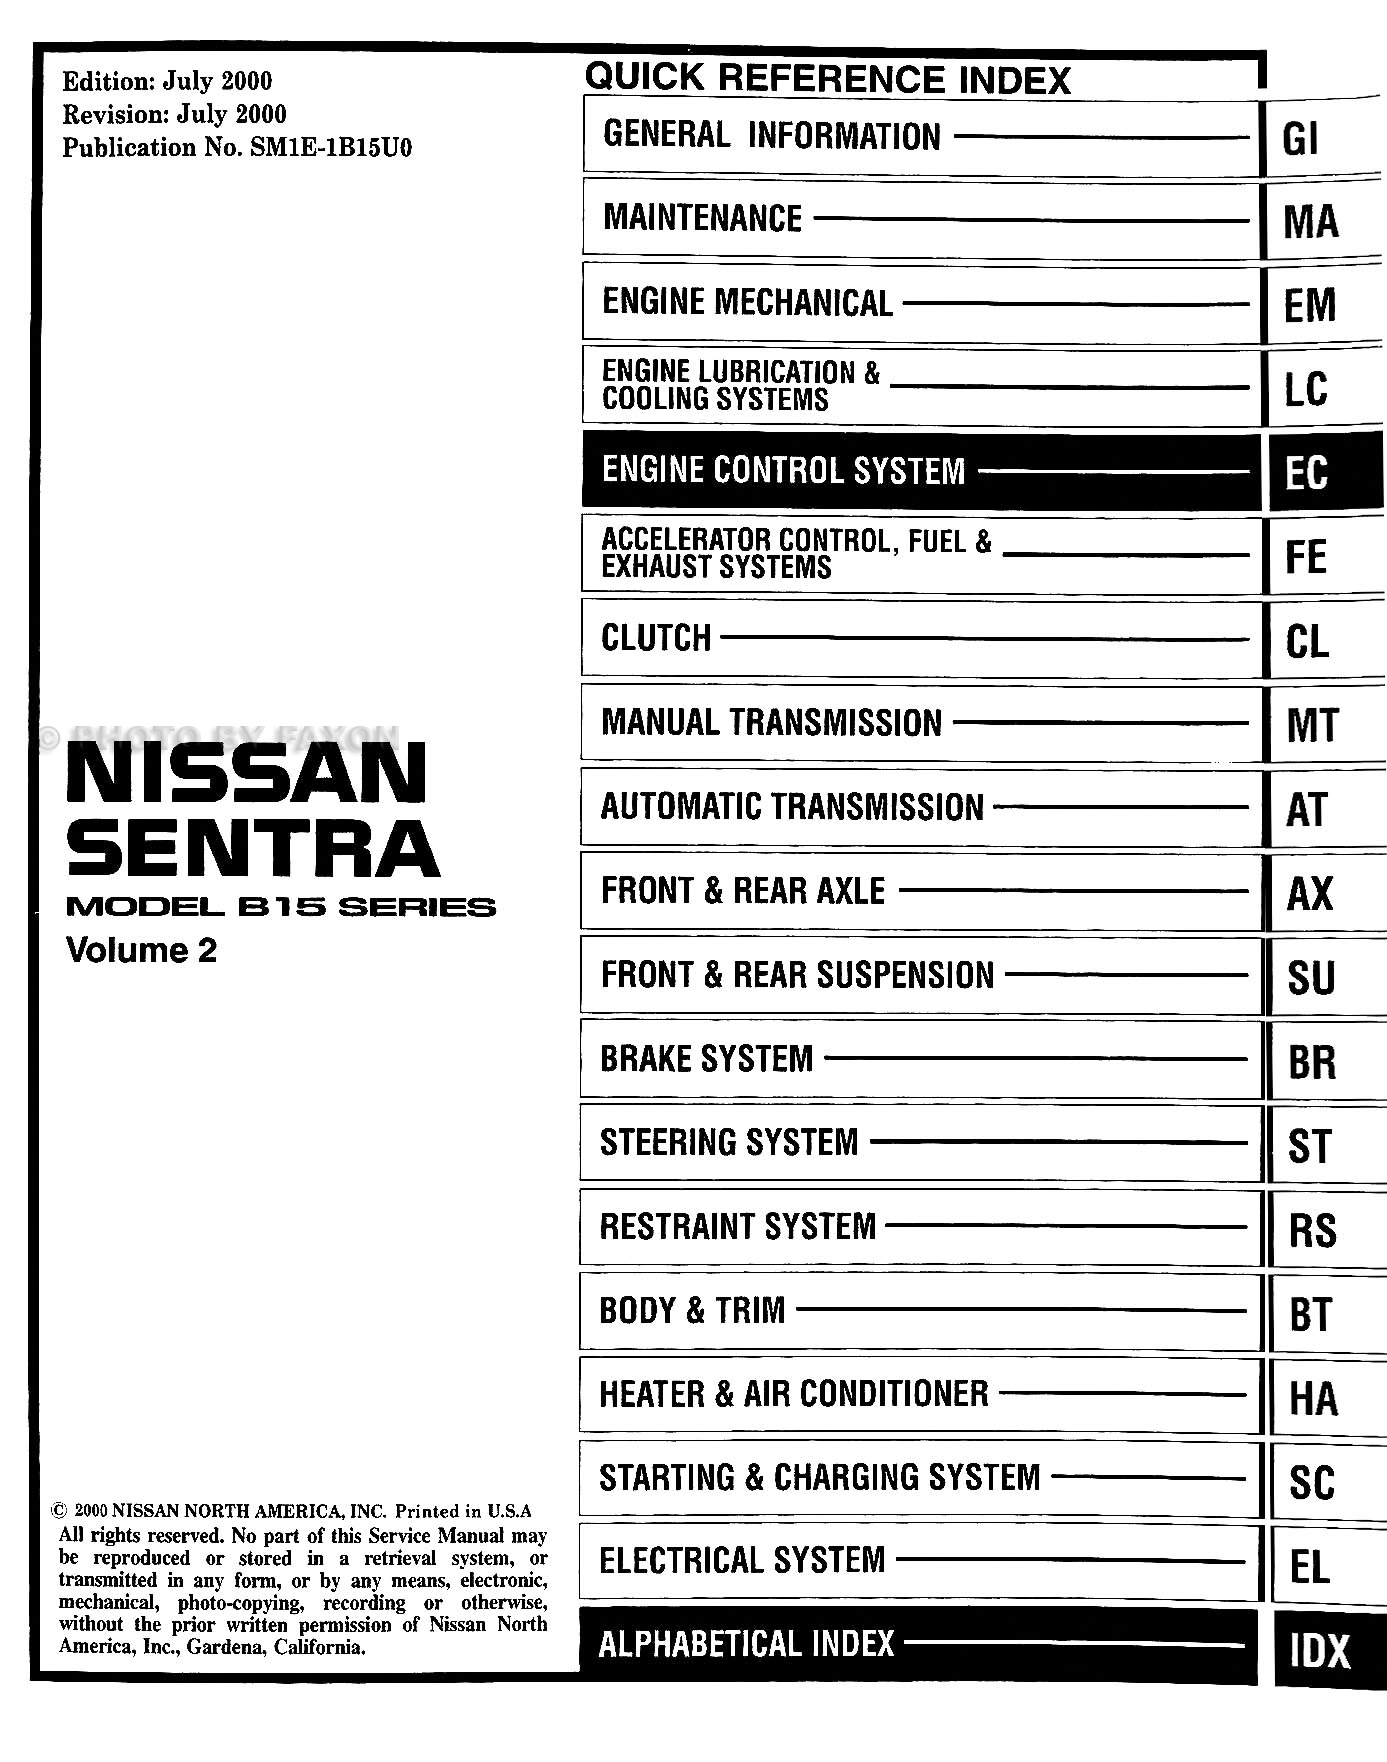 hight resolution of 94 nissan sentra fuse diagram wiring library mini cooper fuse box diagram 1994 nissan sentra fuse box